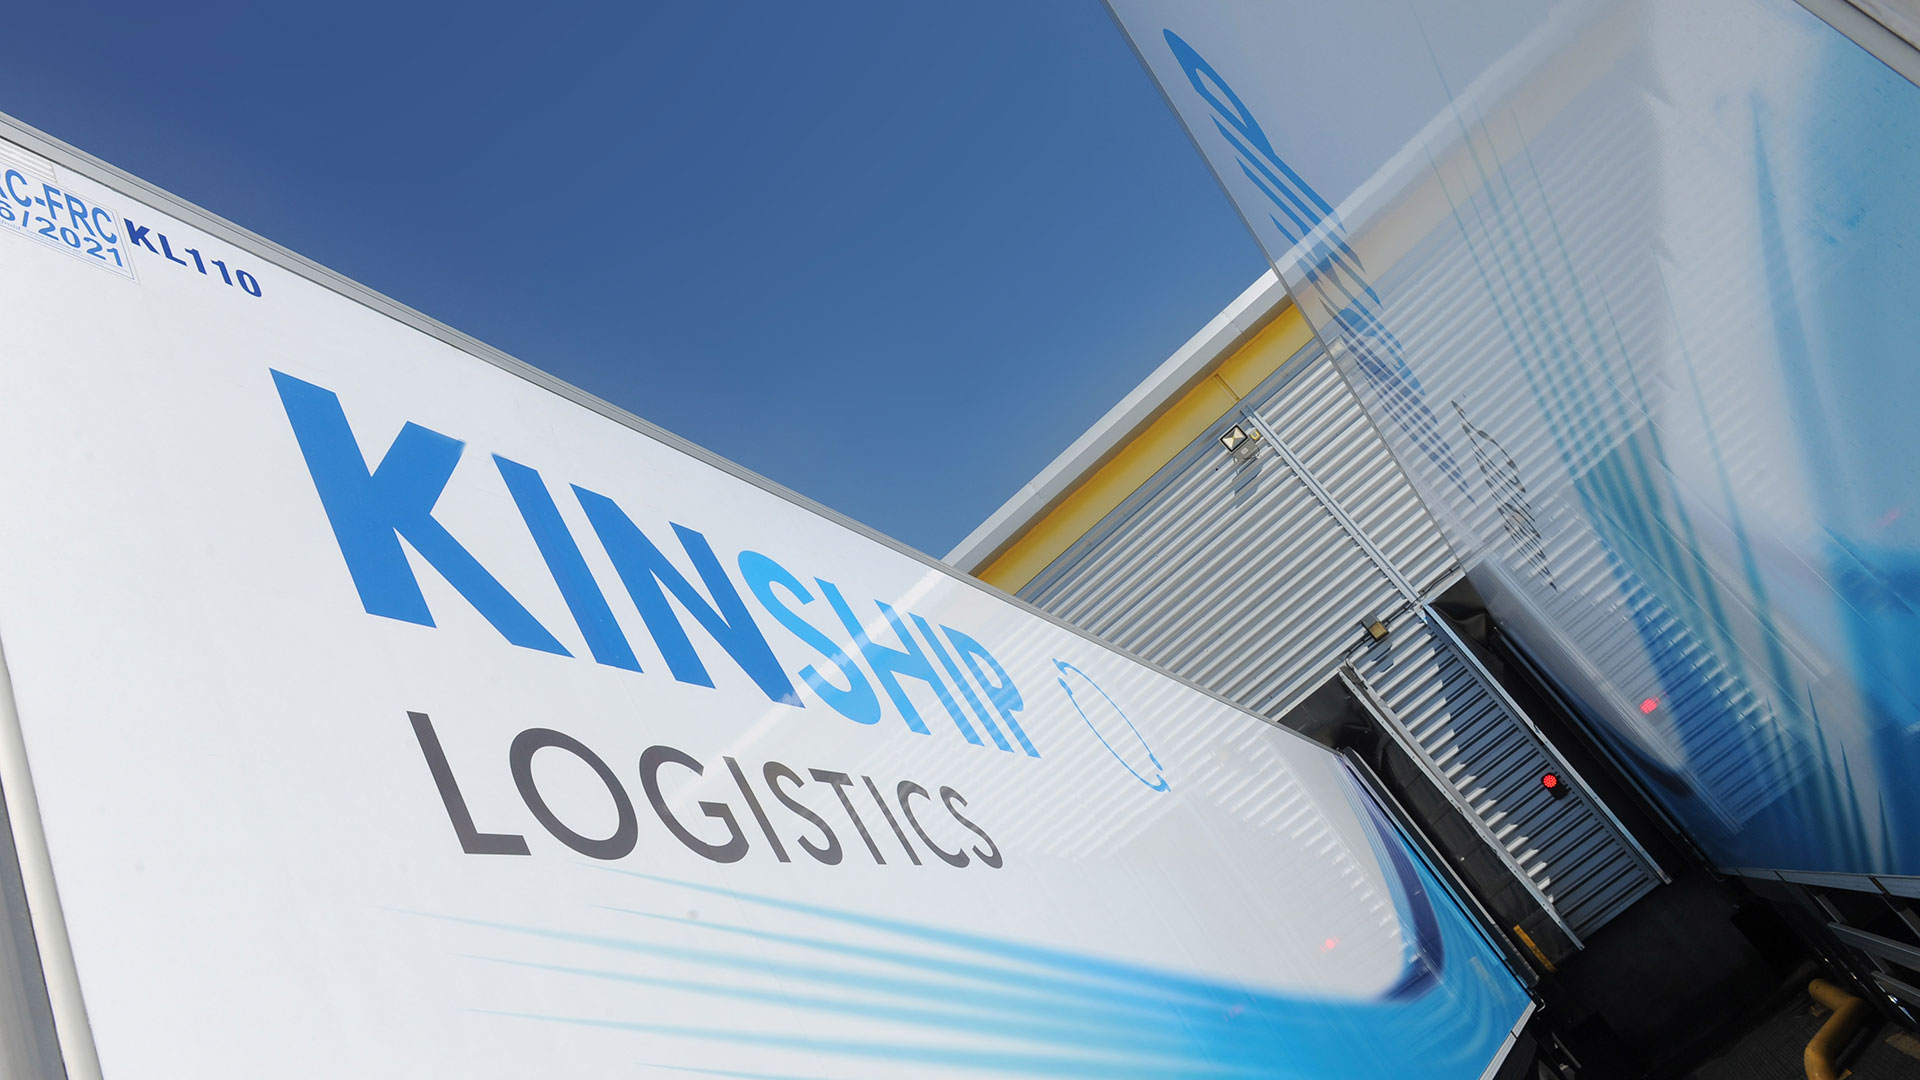 Kinship Logistic trailors